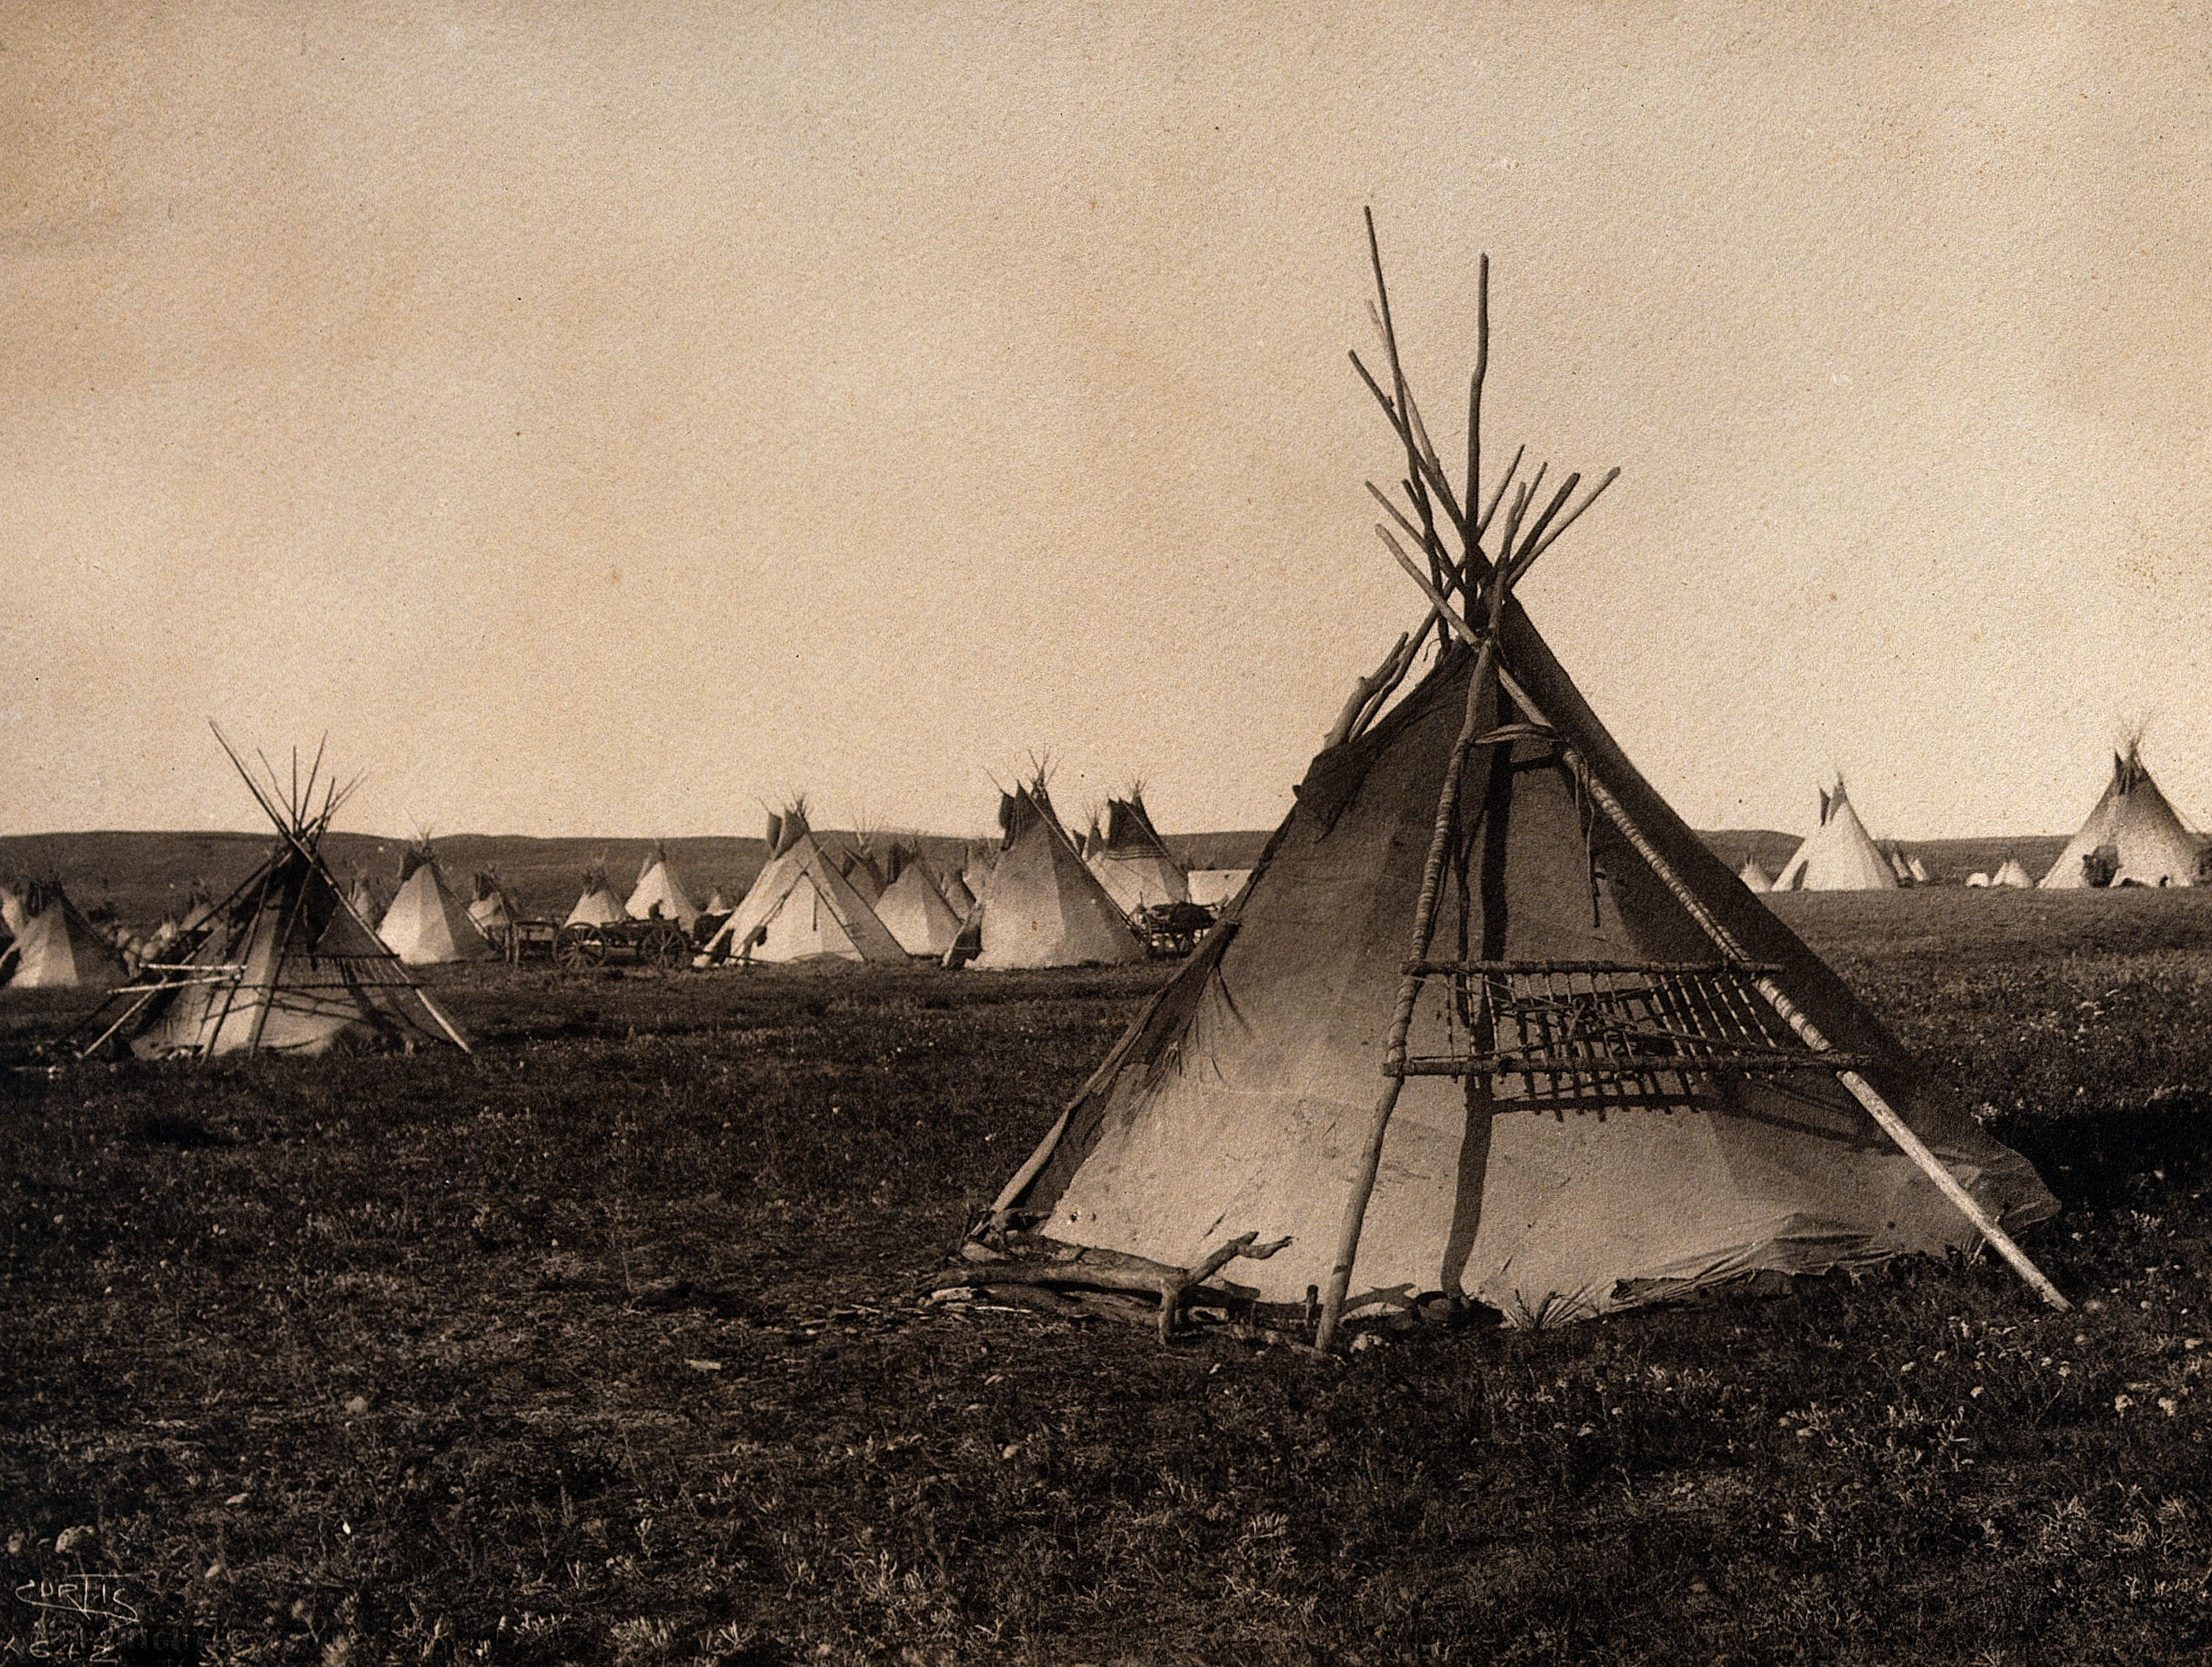 Plains Indian tipi, North America. Wellcome V0038483